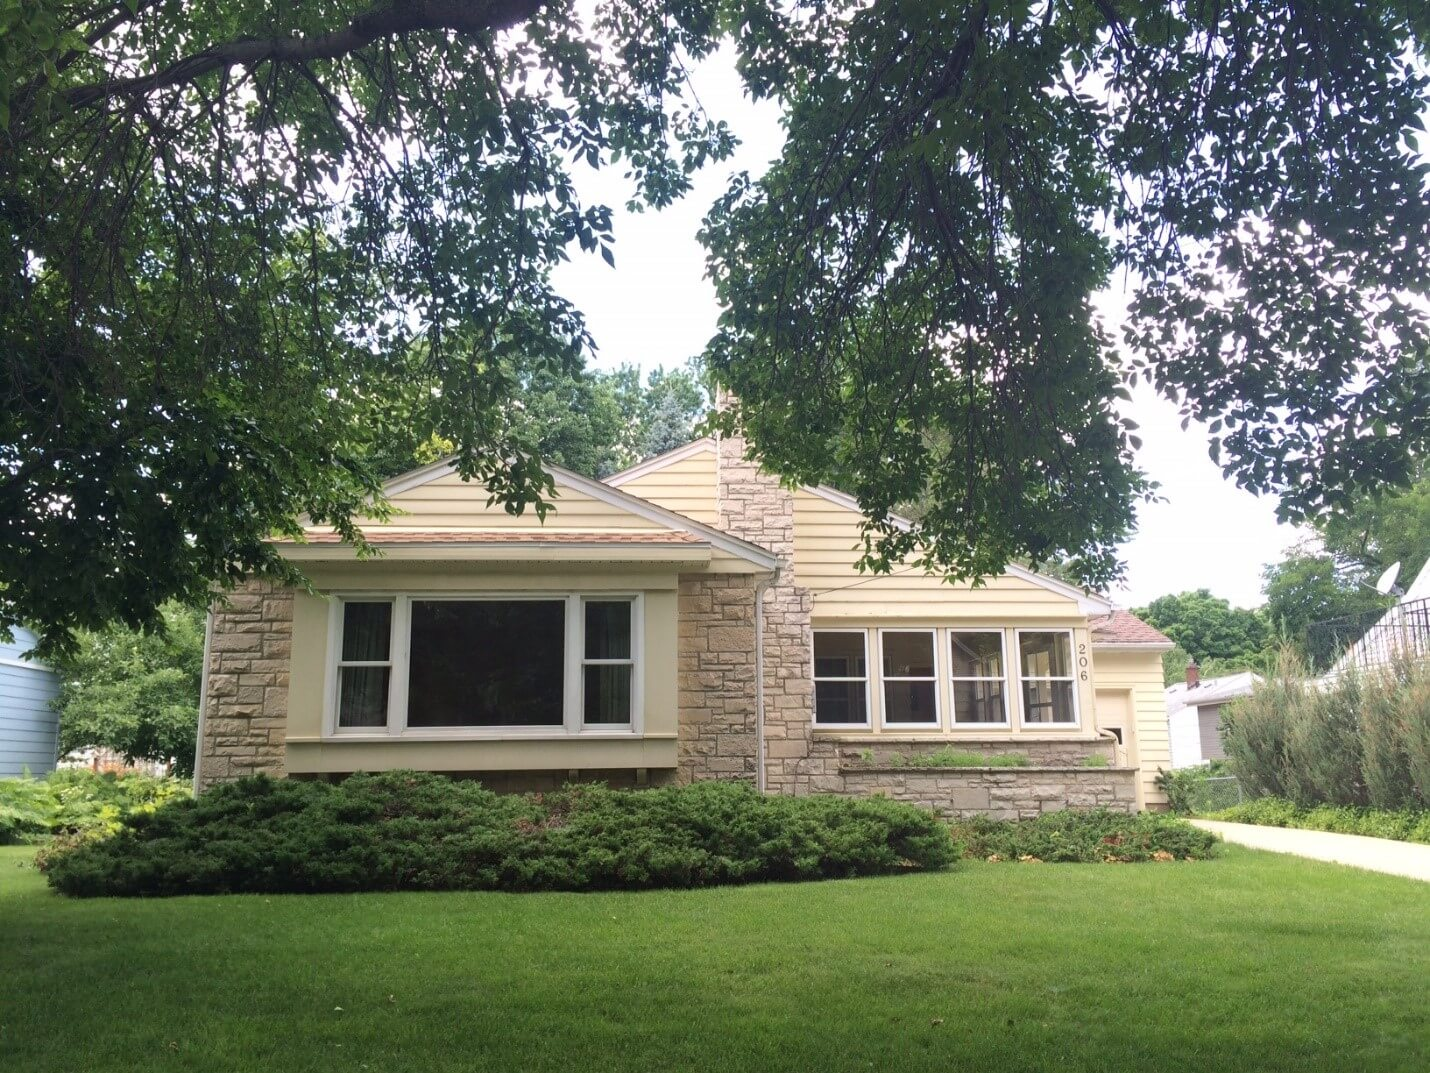 JUST SOLD!  206 N. Franklin Avenue by Kate Weis